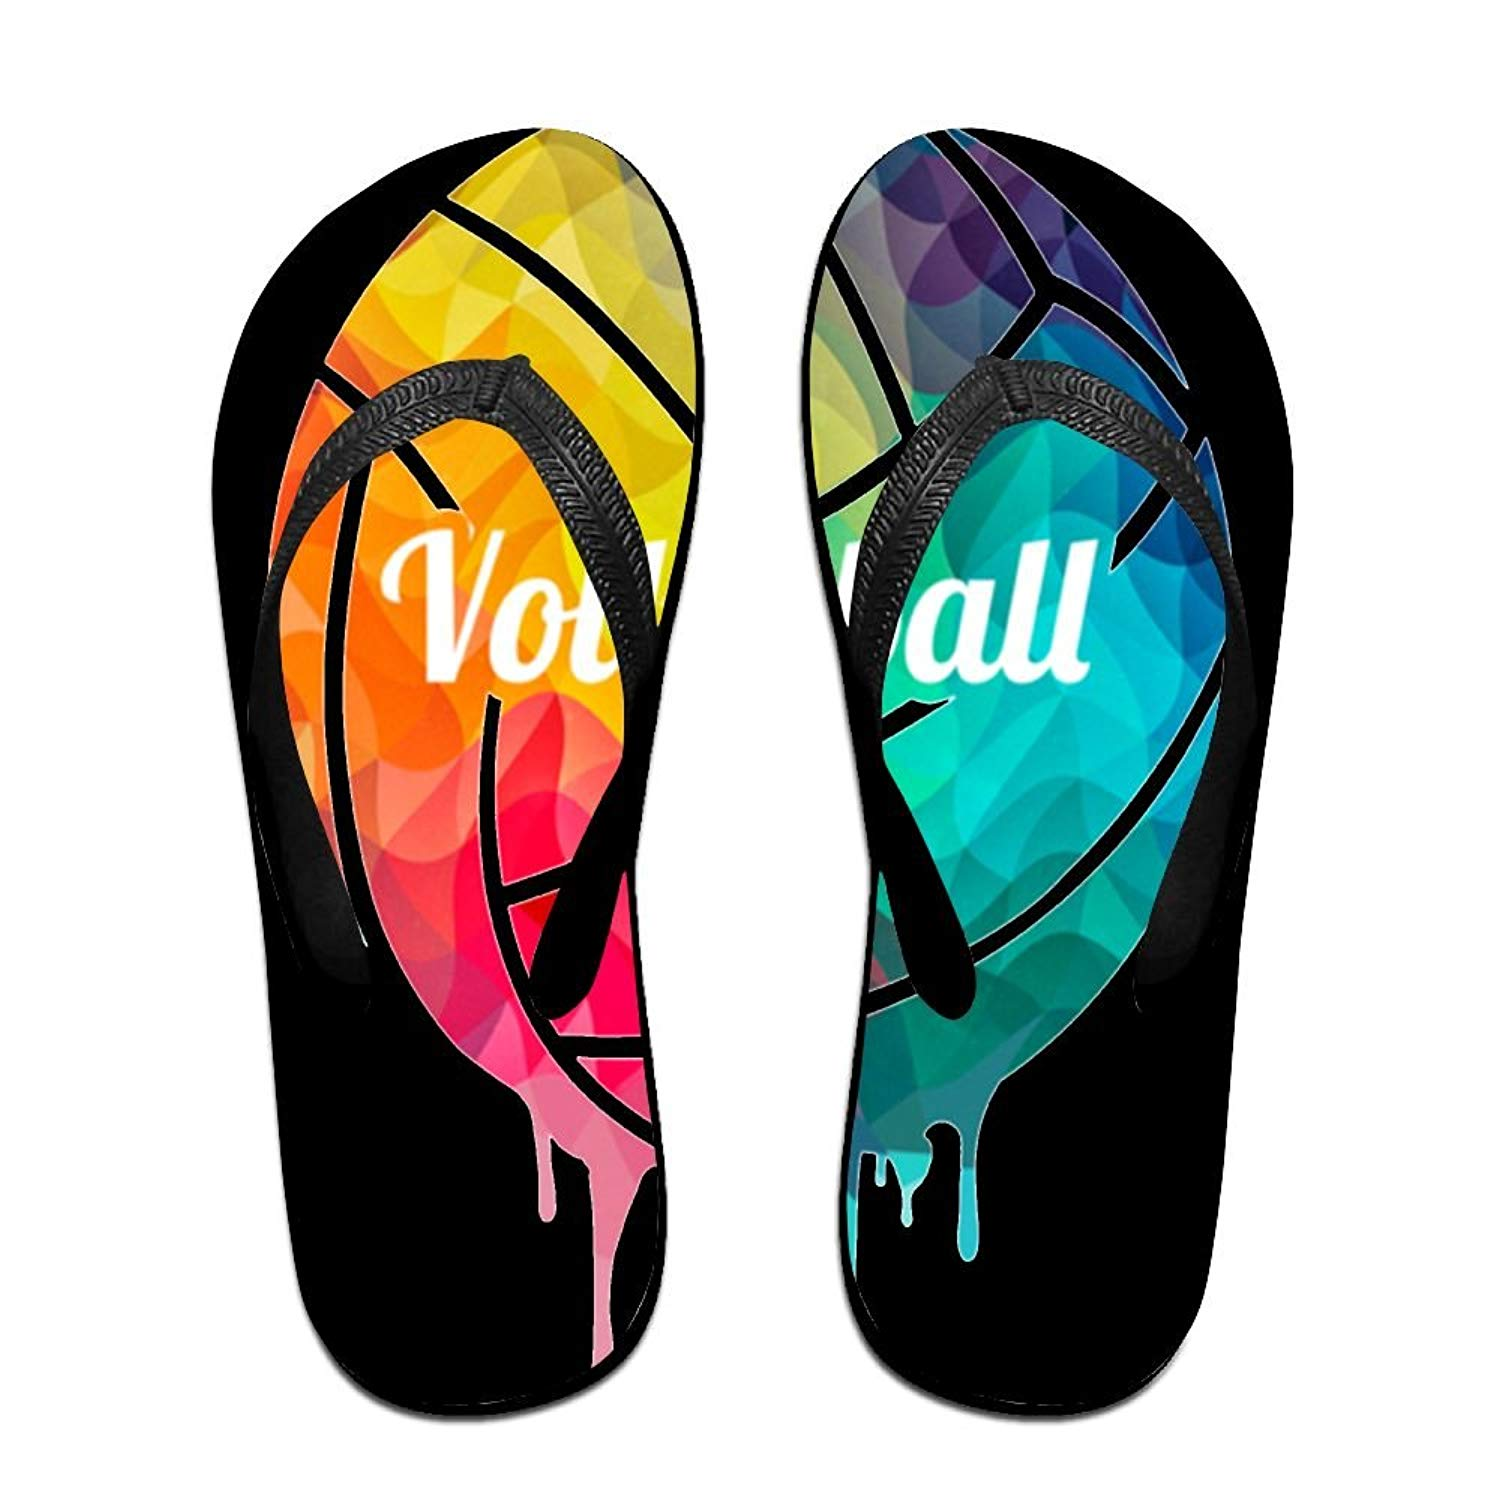 36d970e7d Get Quotations · Tailing Flip Flops Volleyball Painting Unisex Trendy Print  Slippers Beach Sandal